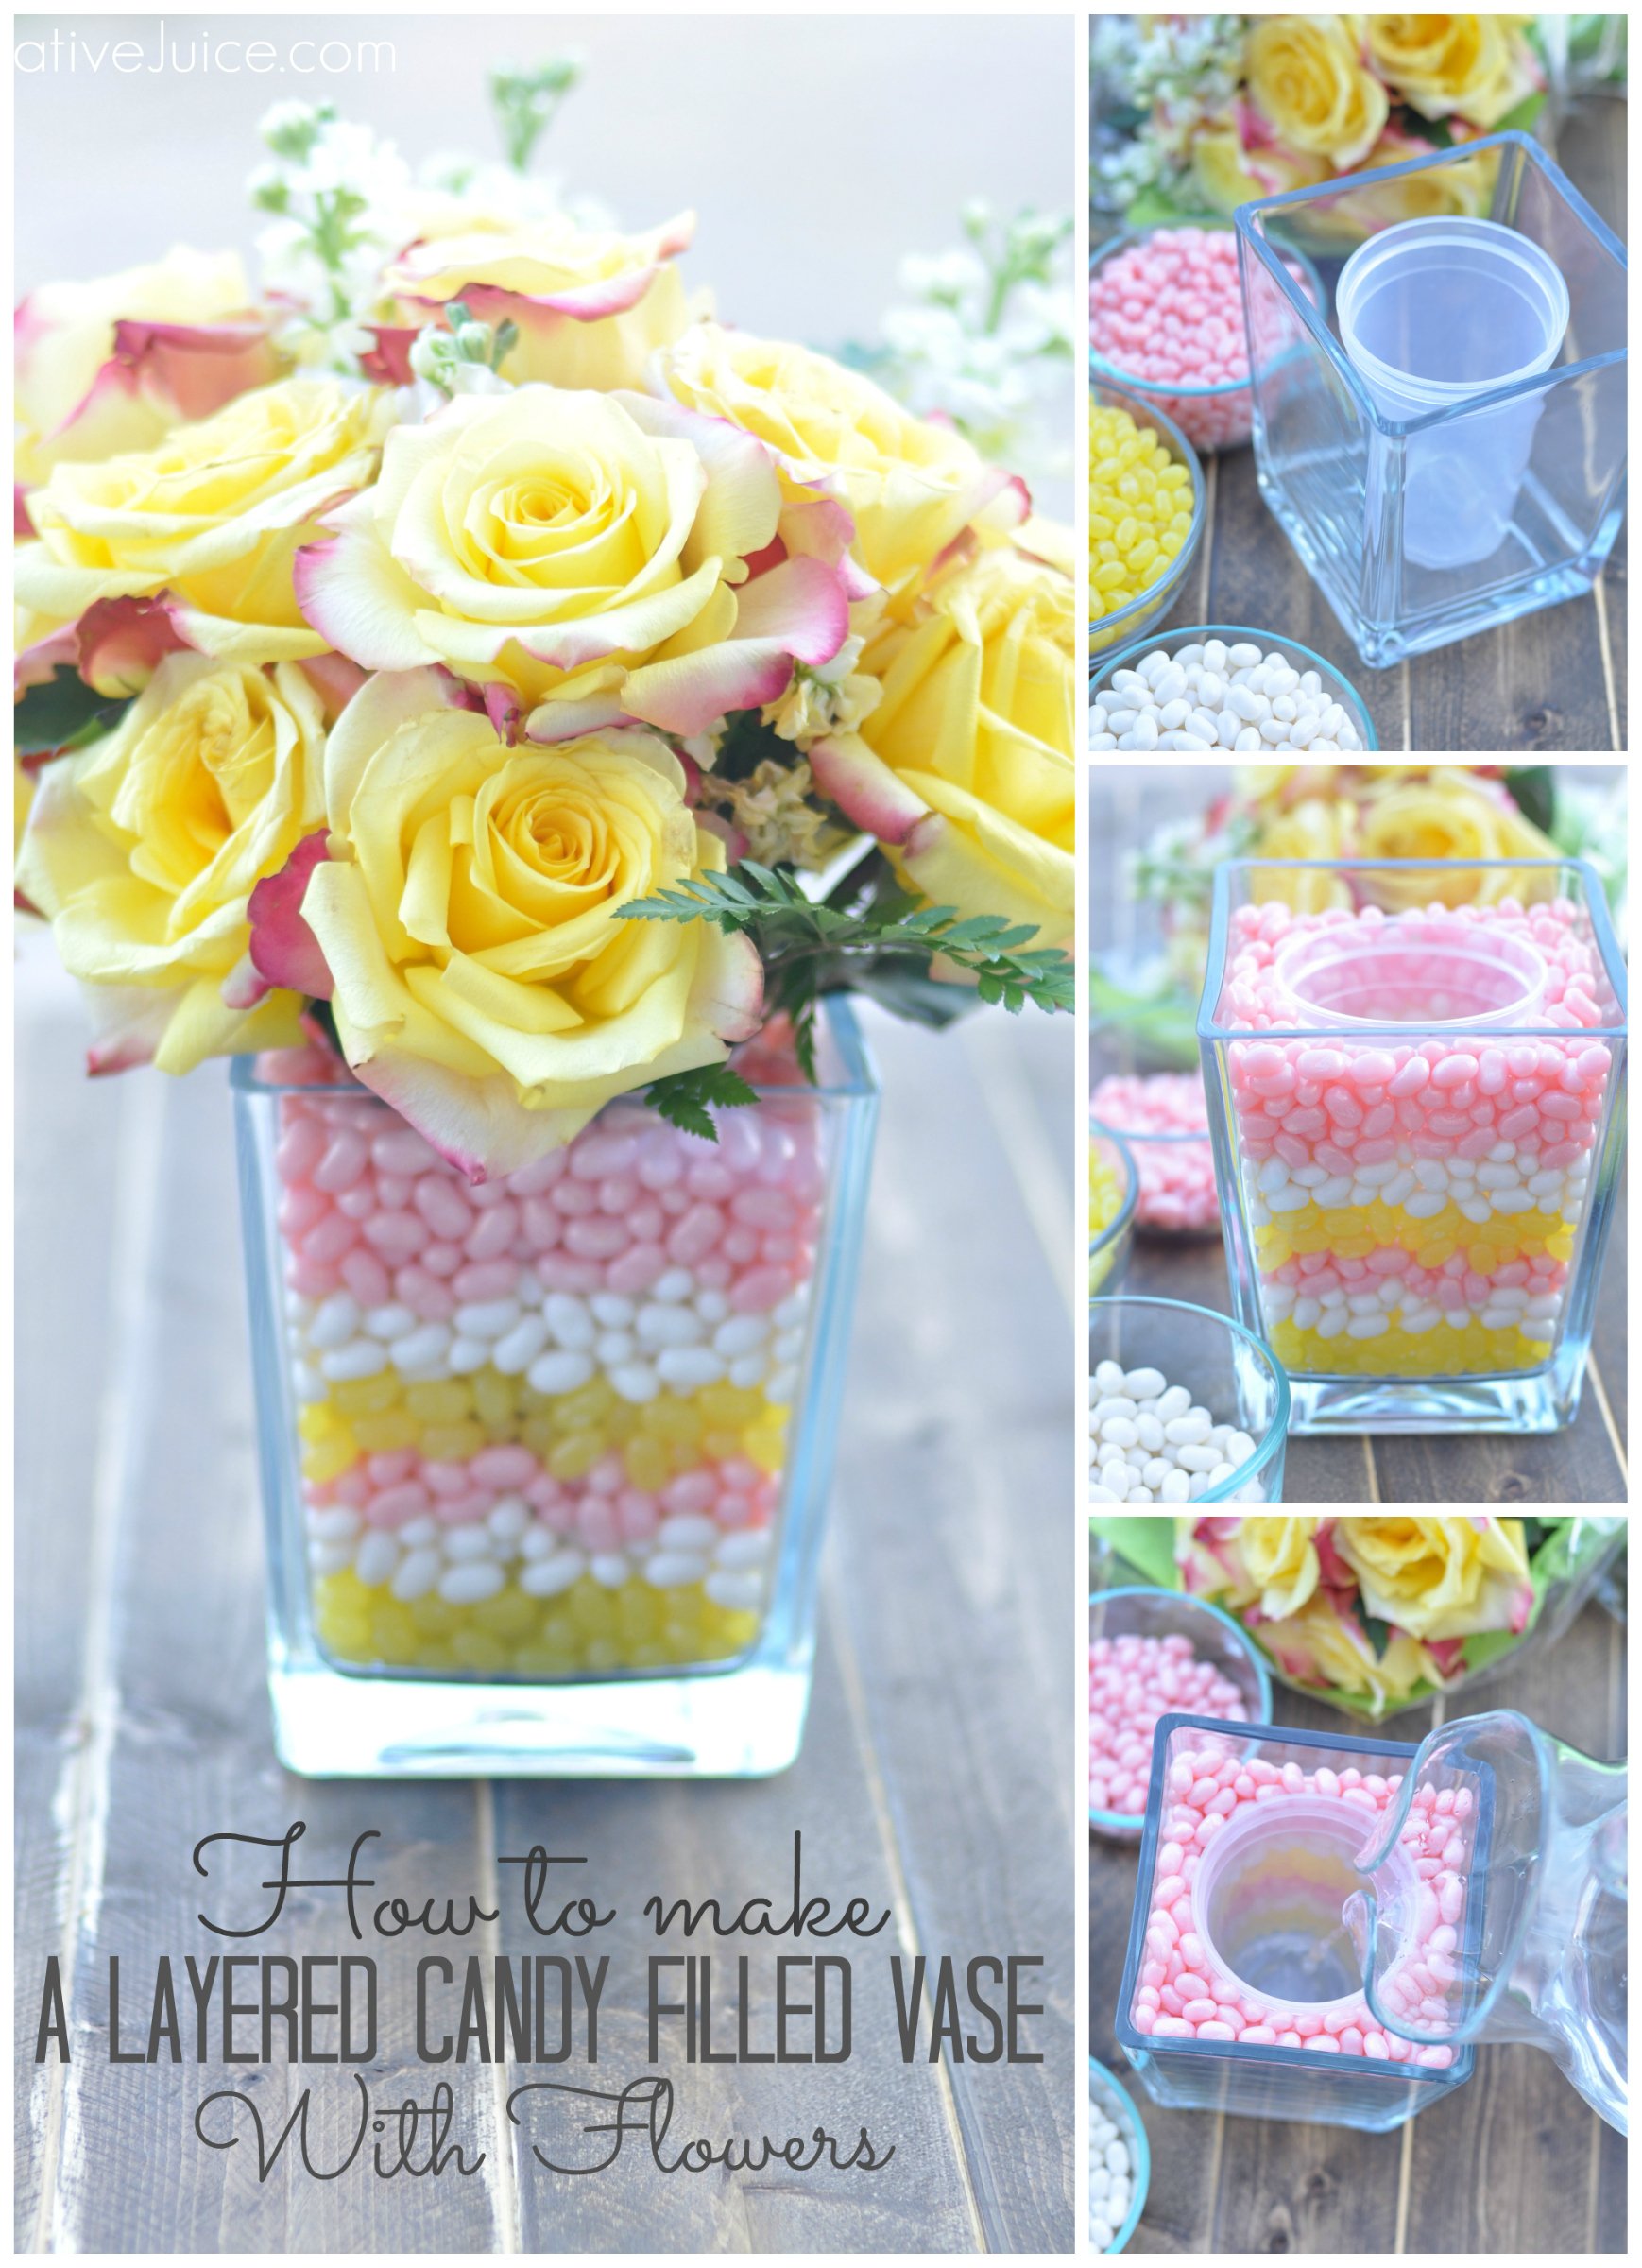 How to make a layered candy filled vase with flowers